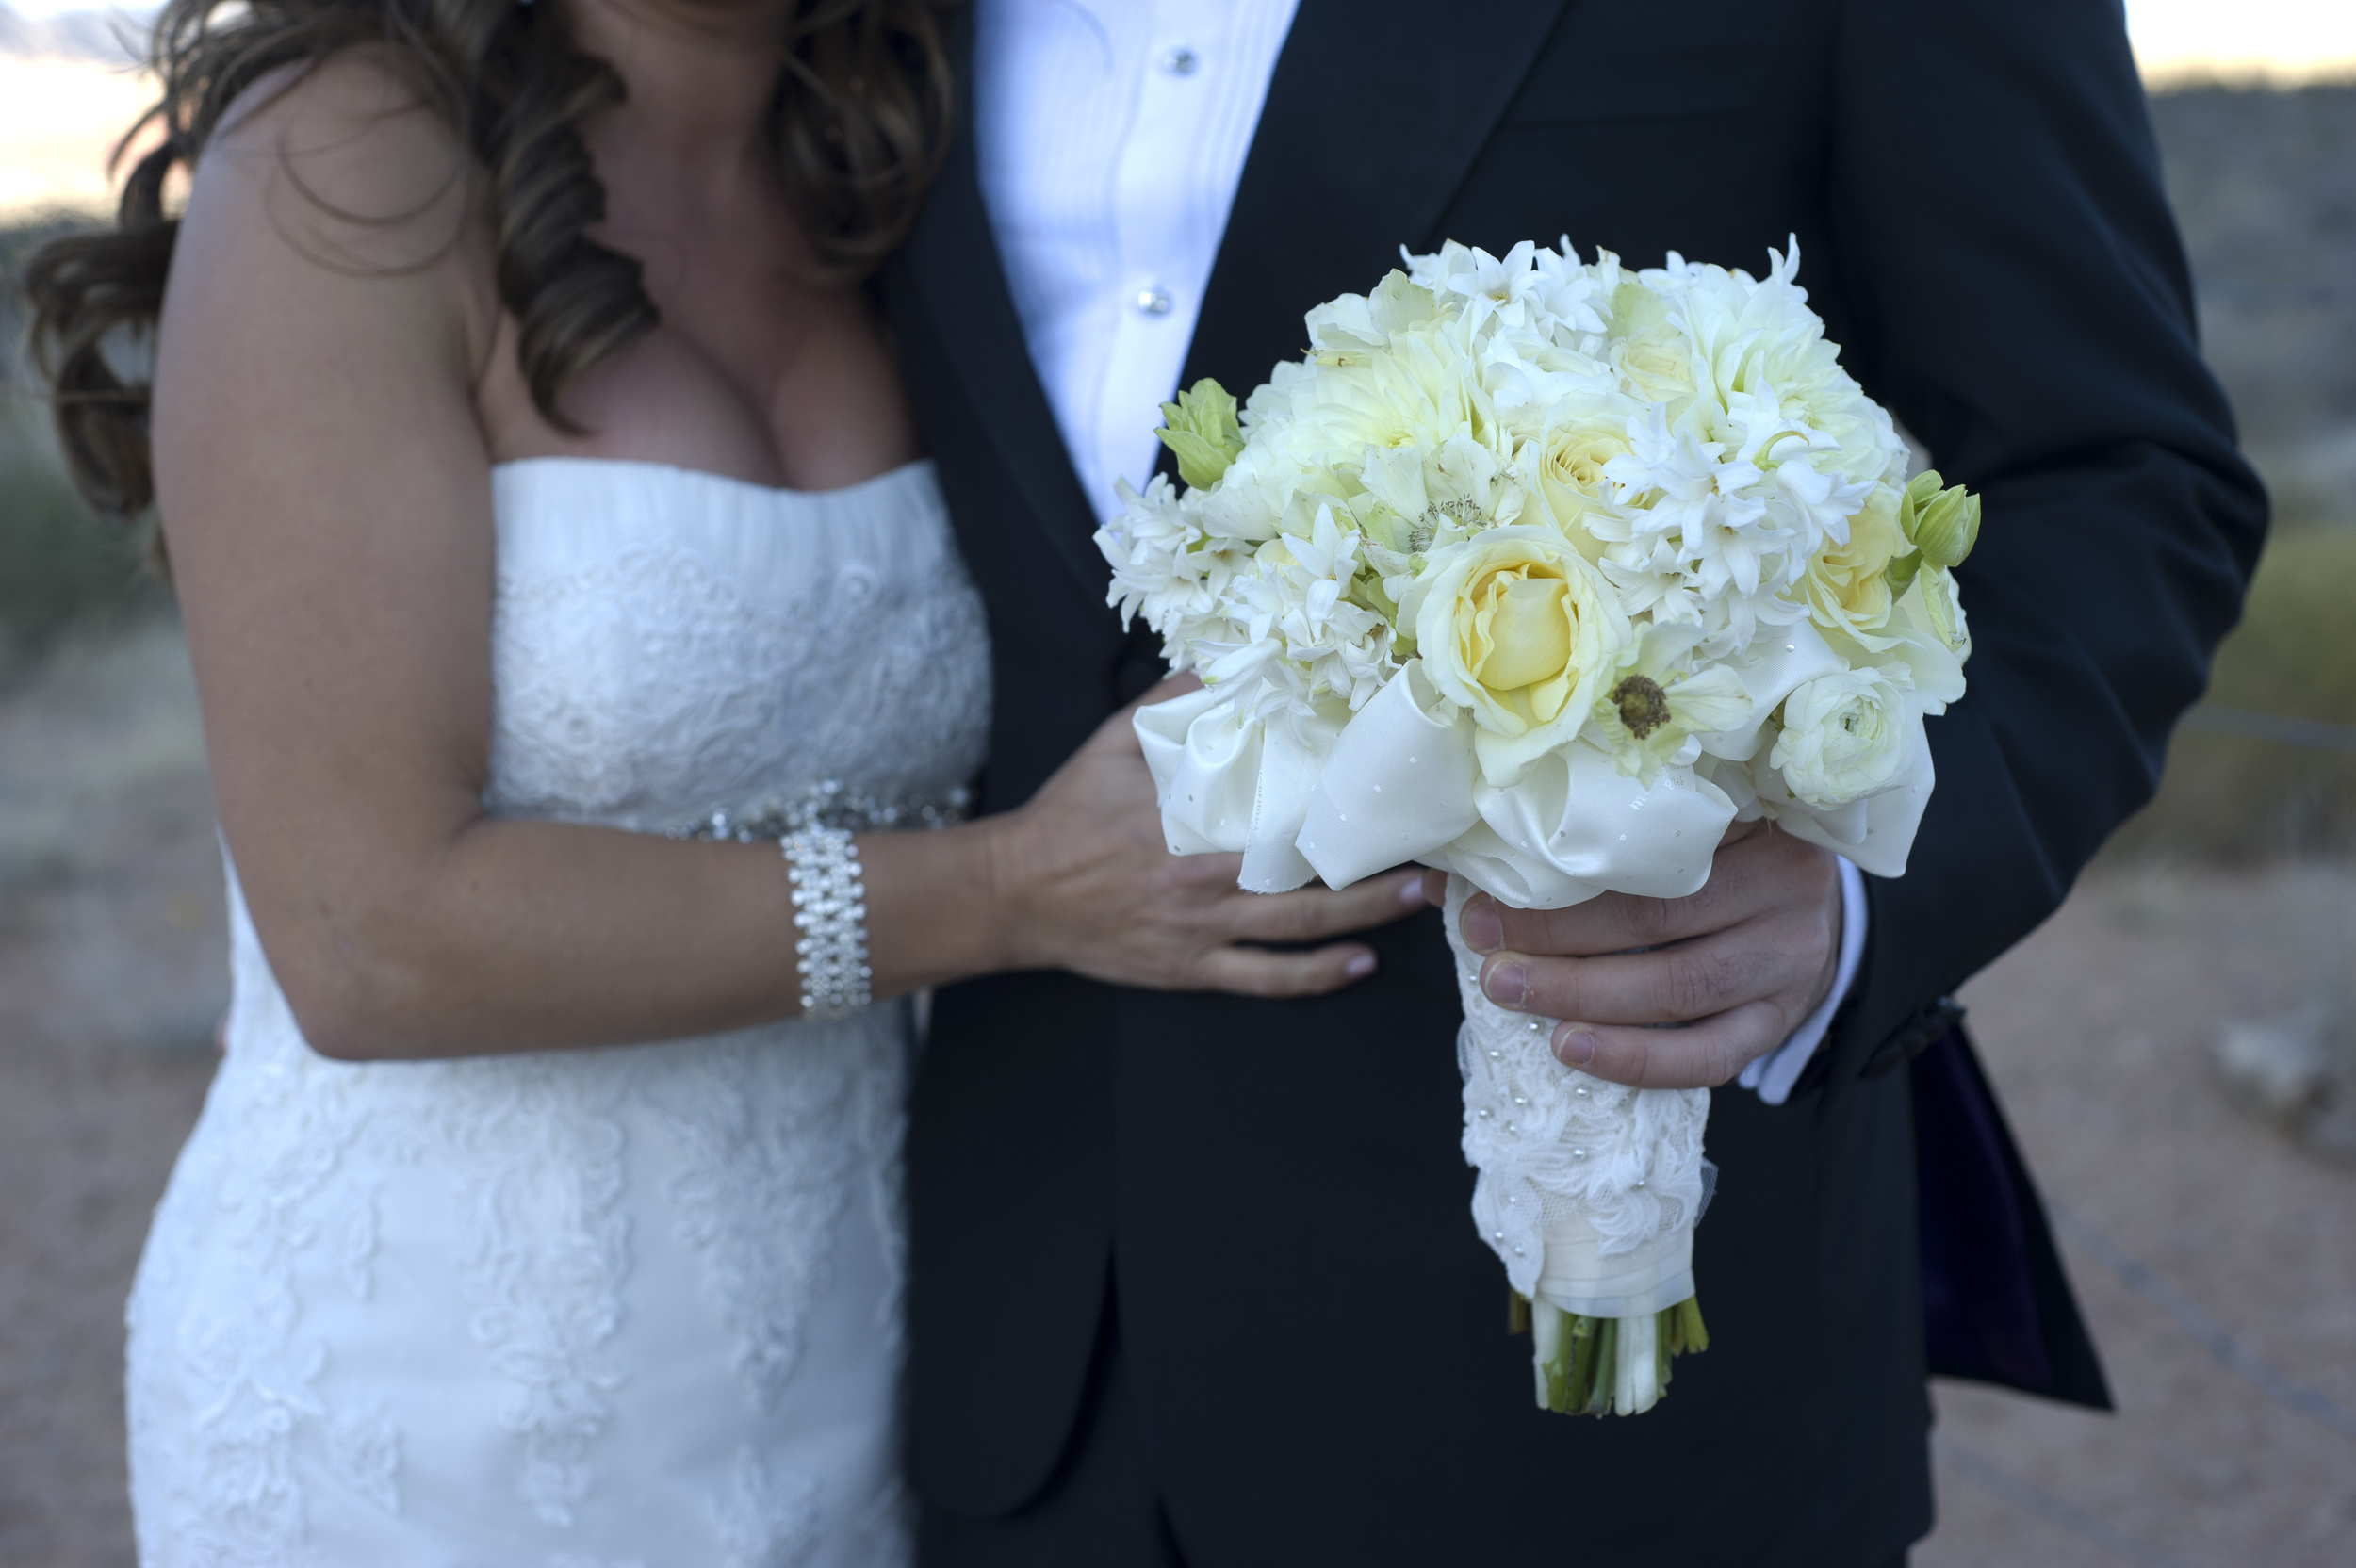 Gorgeous shot of her bouquet! The stems were wrapped in extra fabric from her dress!